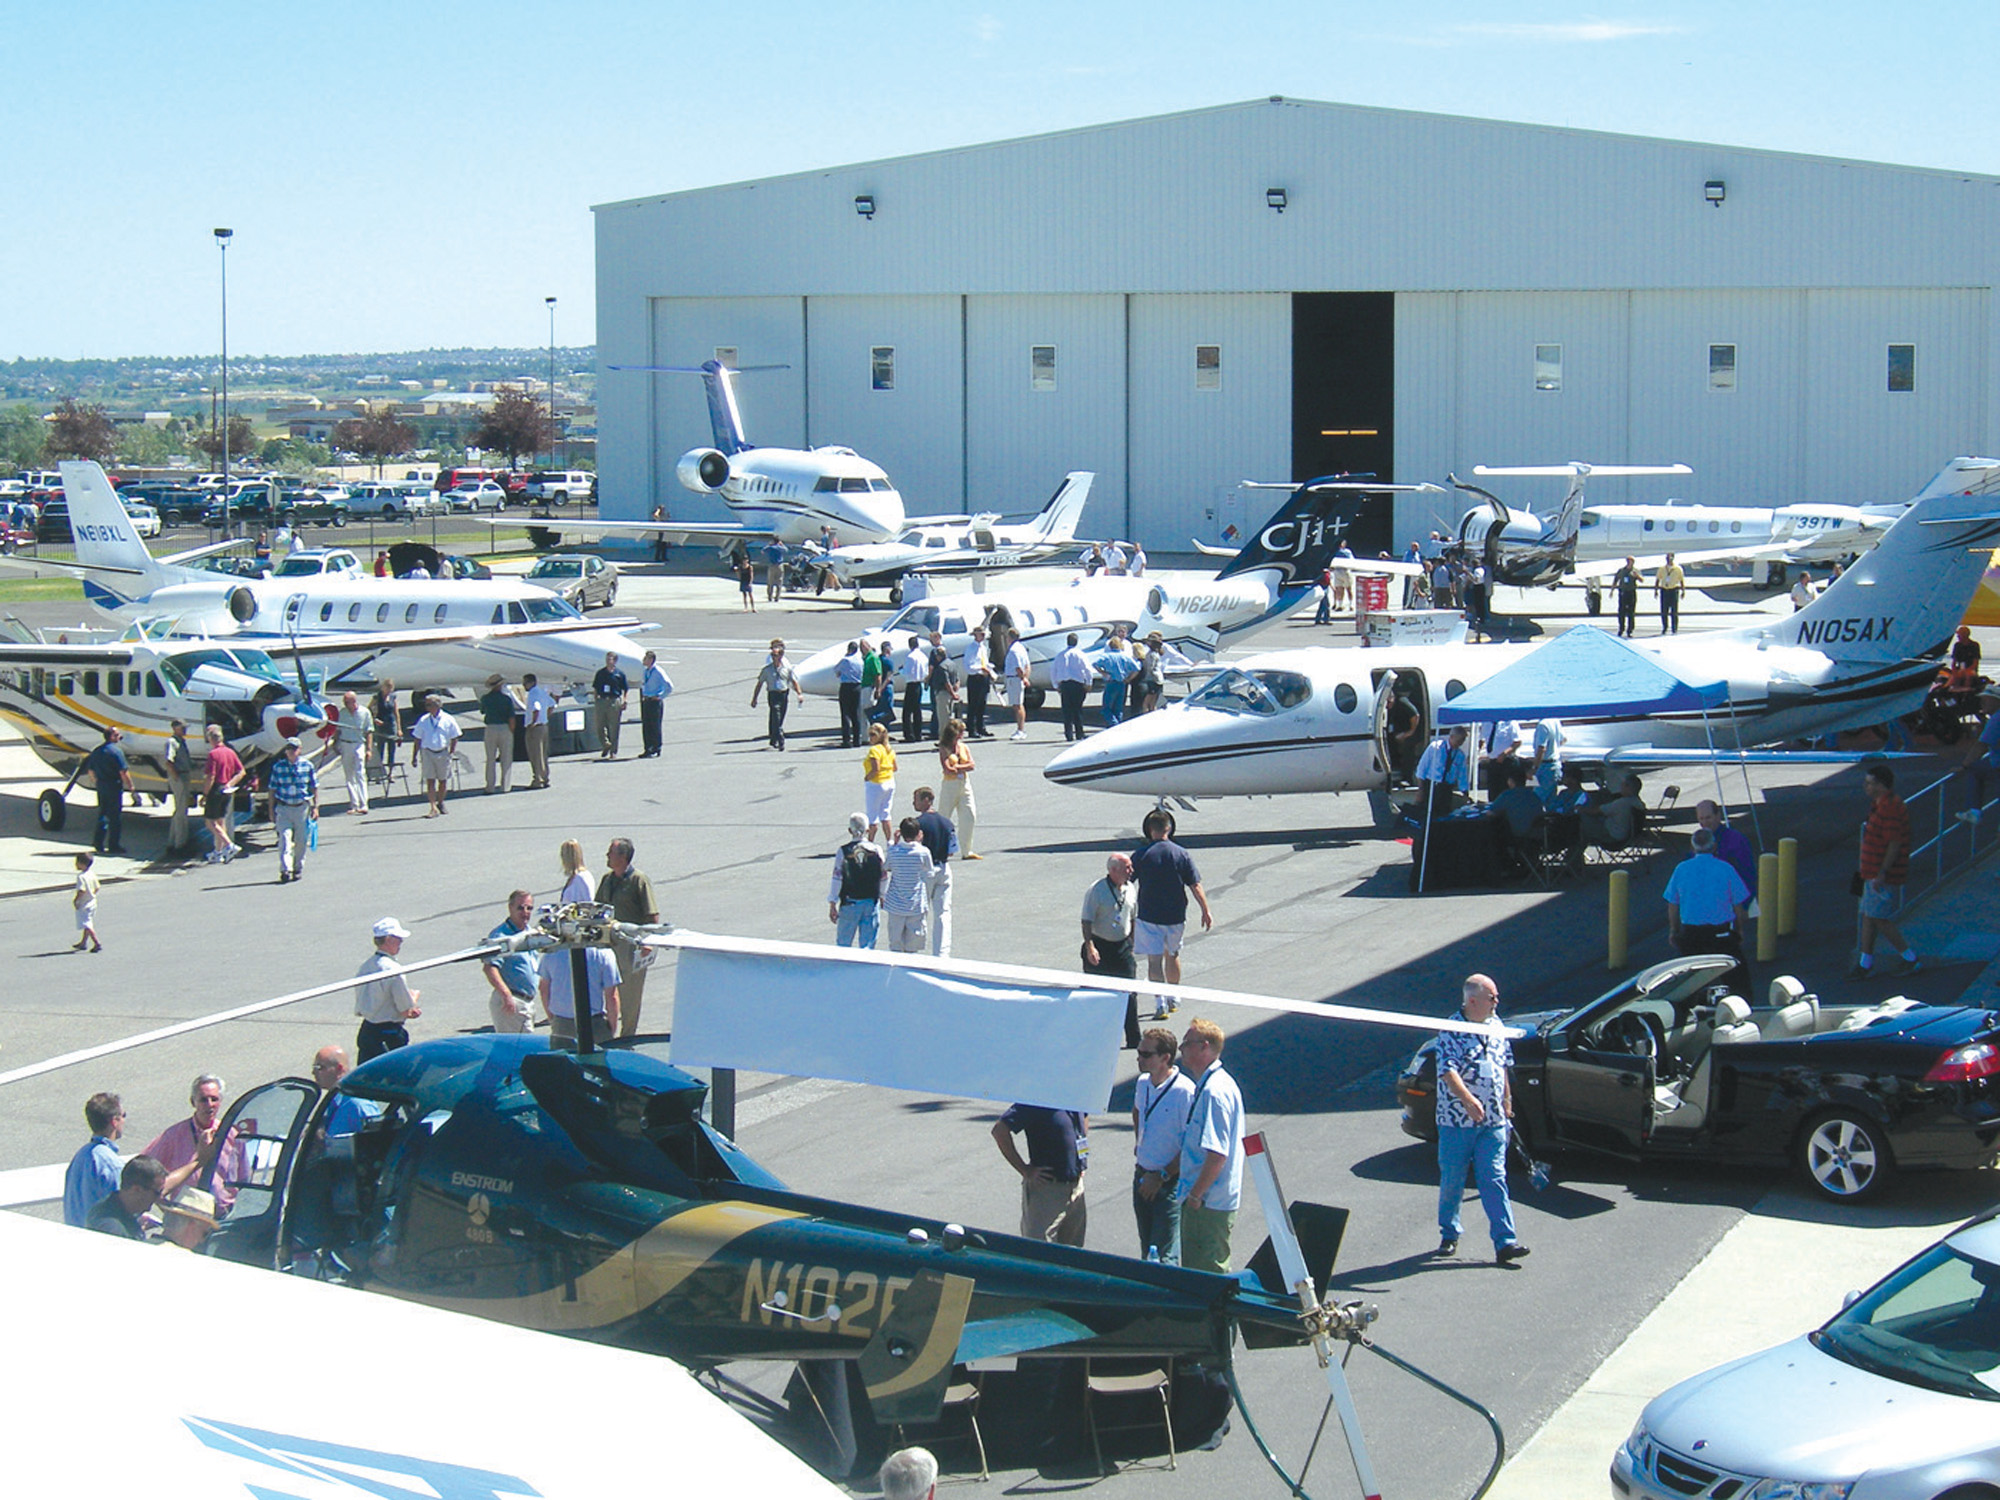 Business Aircraft & Jet Preview August 8, 2006 at Denver jetCenter, Centennial Airport (APA)